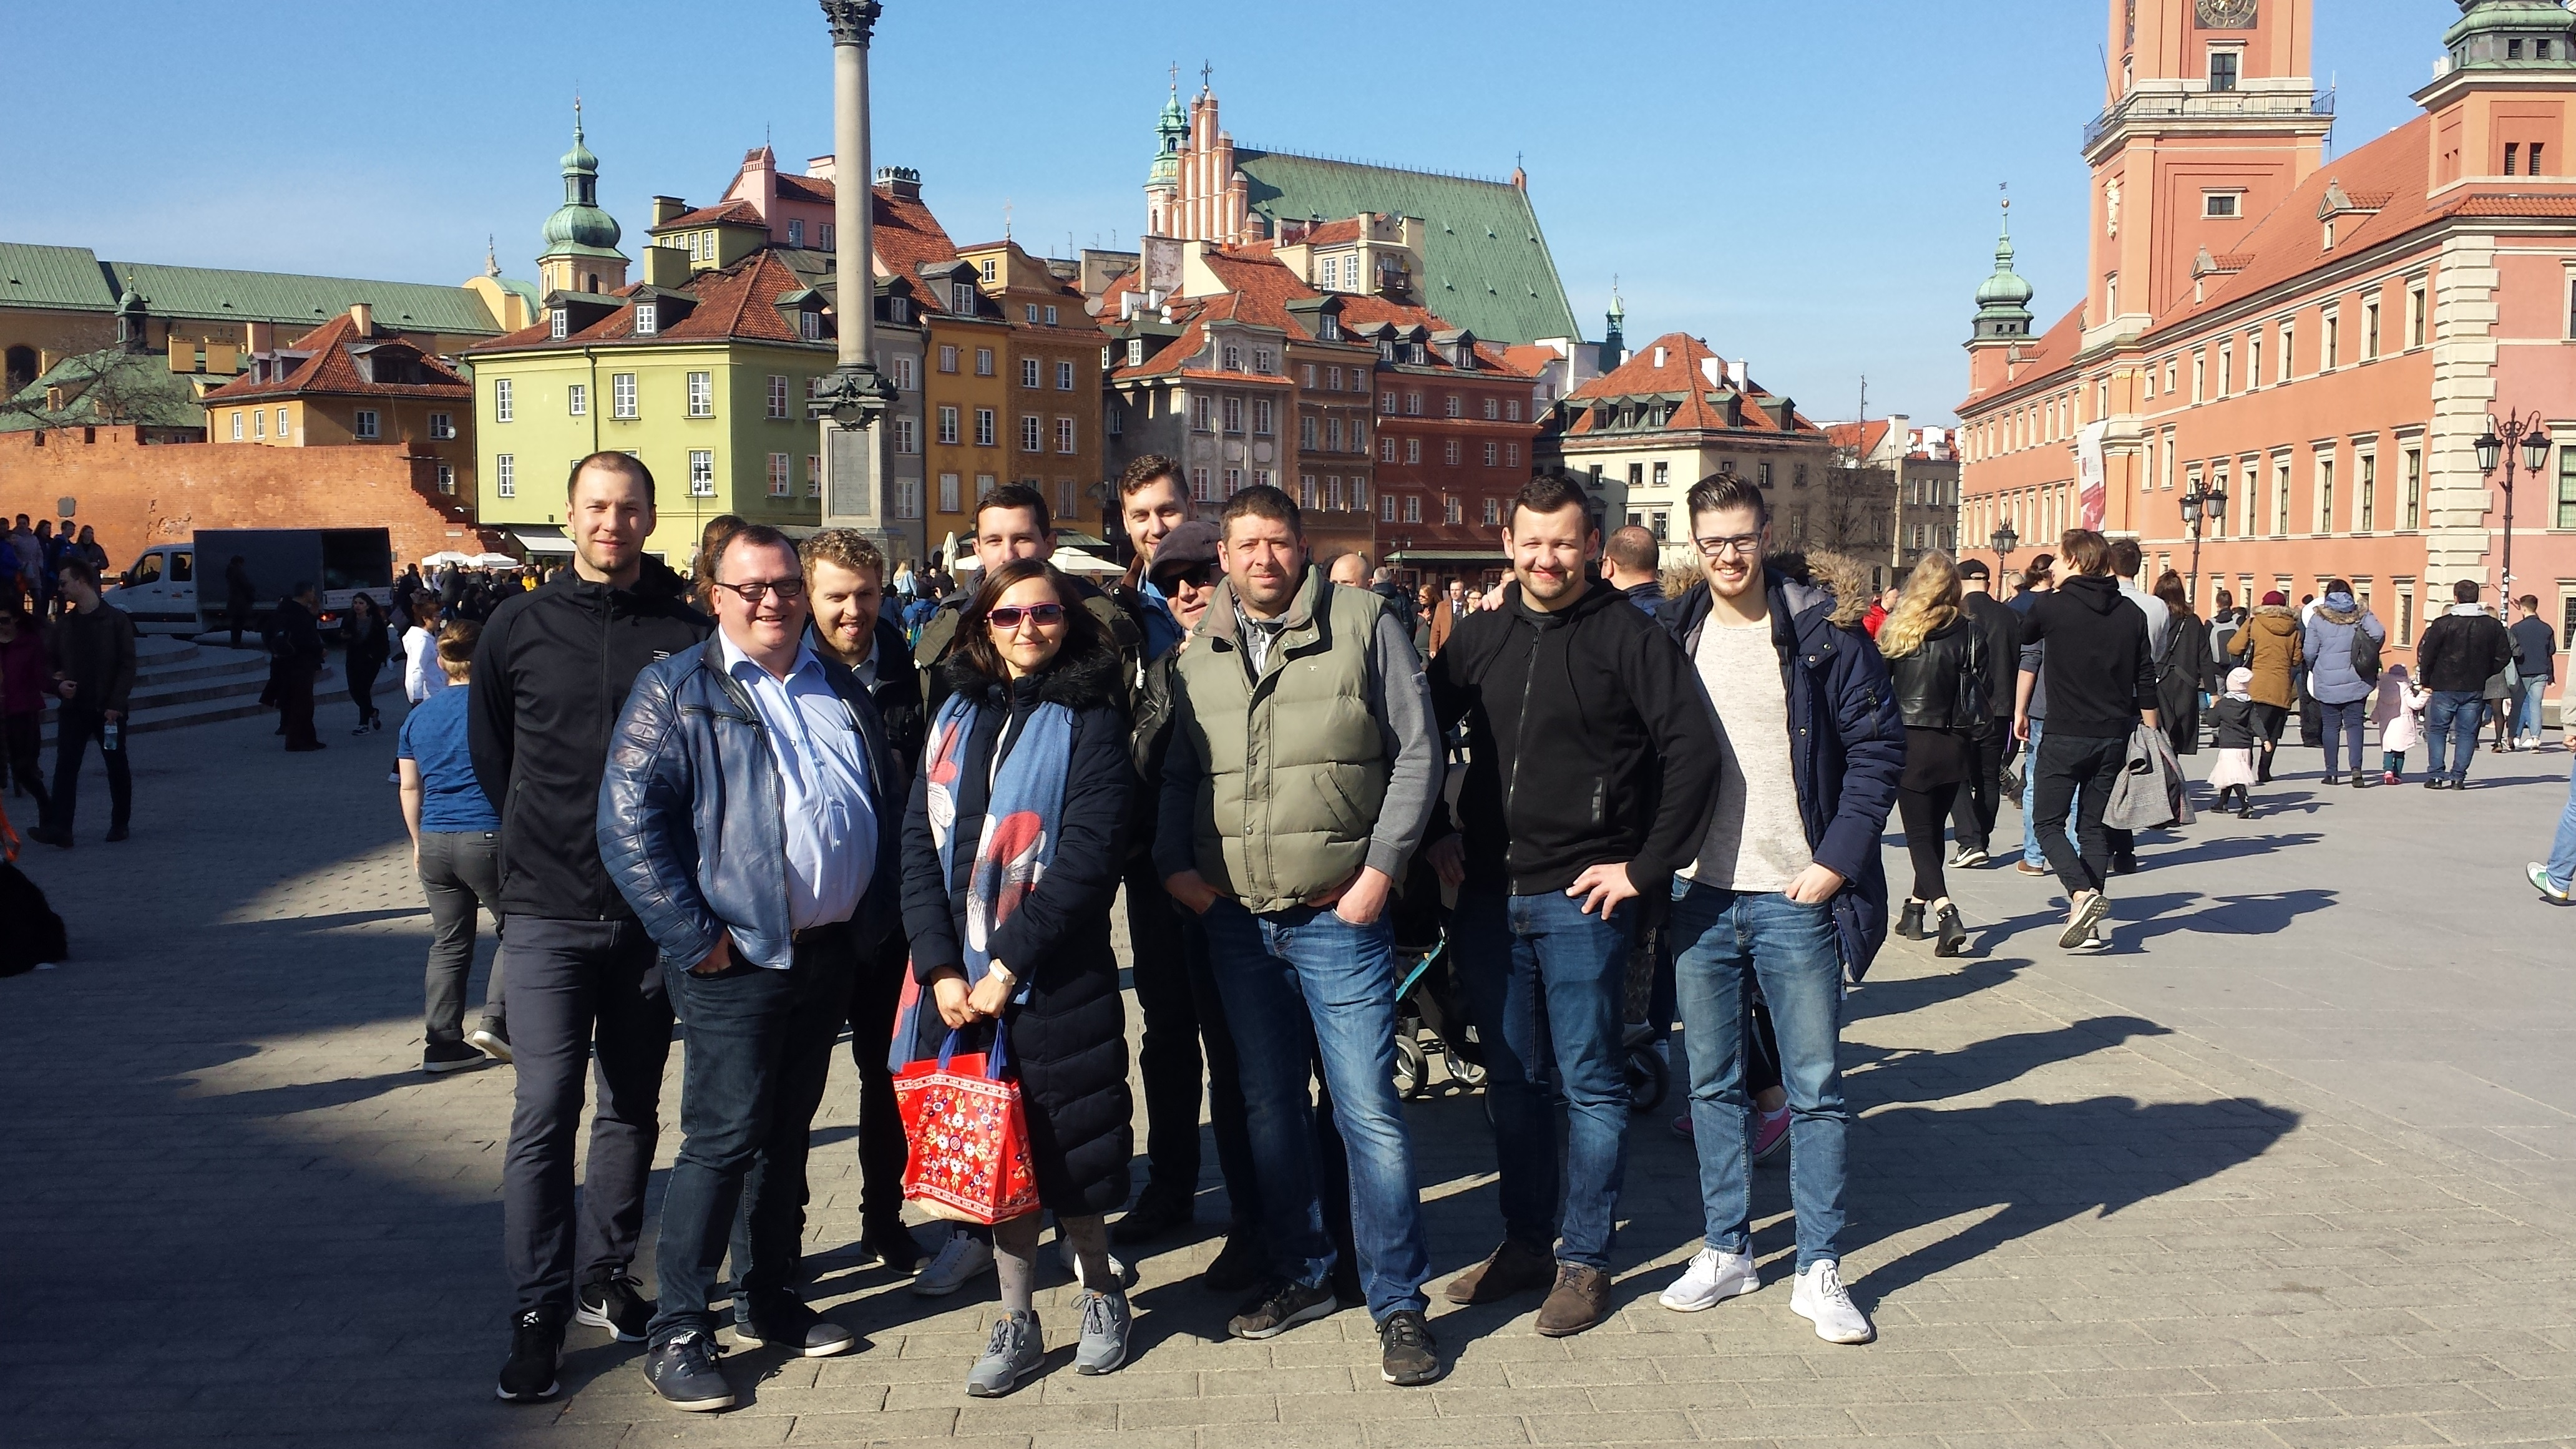 Step in Warsaw - City guide to Warsaw. A beautiful spring day in Warsaw with my tourists from Austria. A part of the Sigismund's Column, a part of the Royal Castle, but the whole group in the picture:). Warsaw, March 2019.